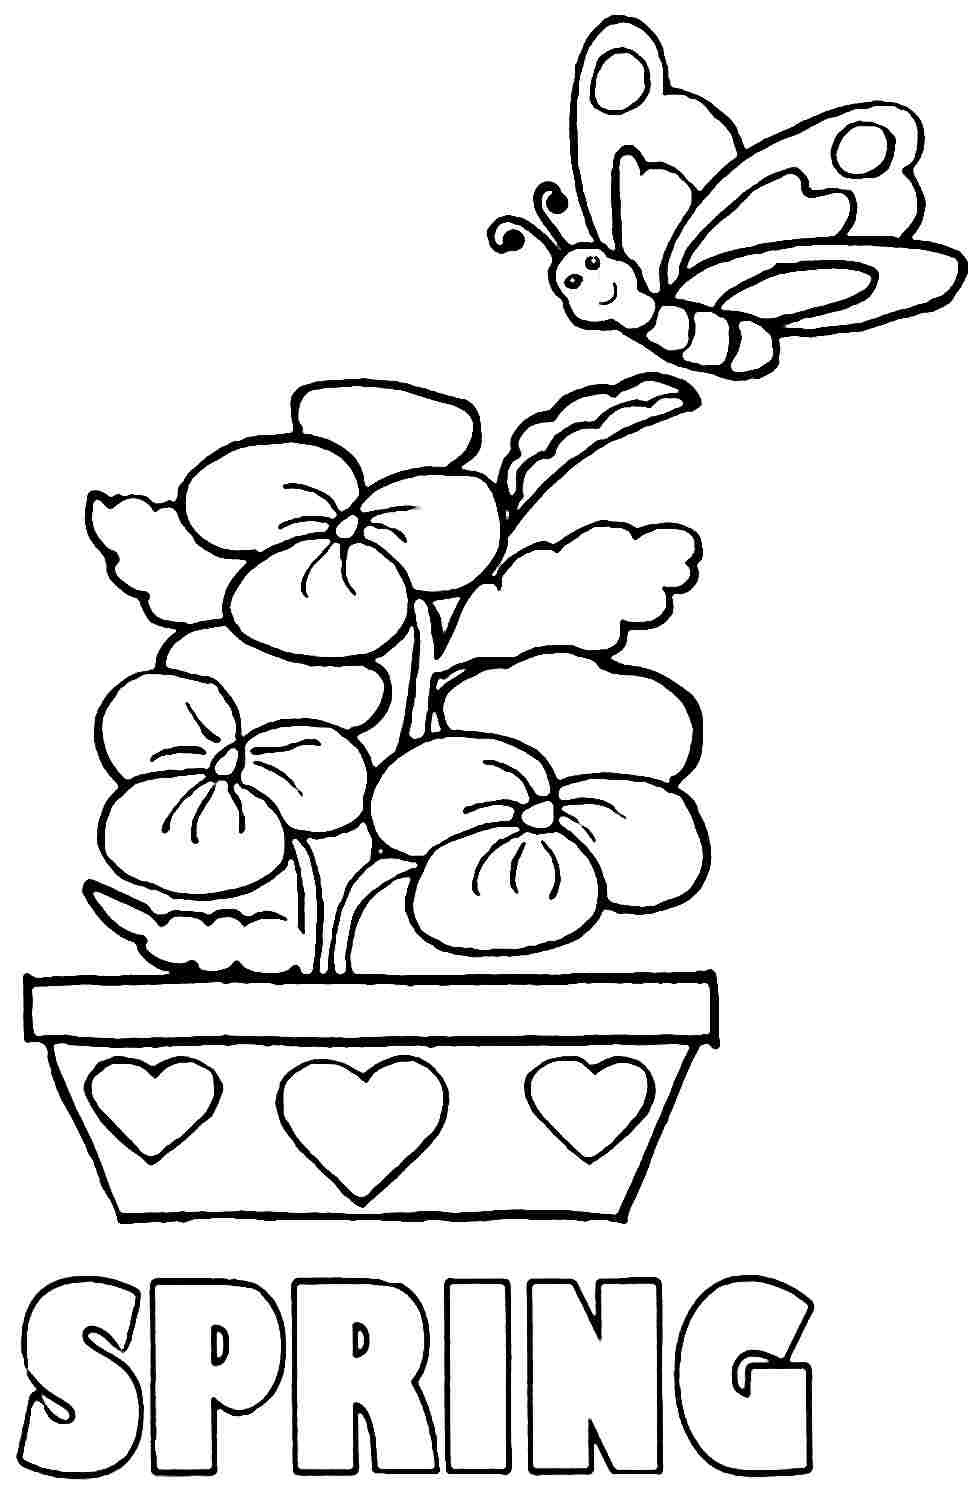 Free Coloring Pages Spring Time  Spring Coloring Sheets Preschool Printable Books The Art